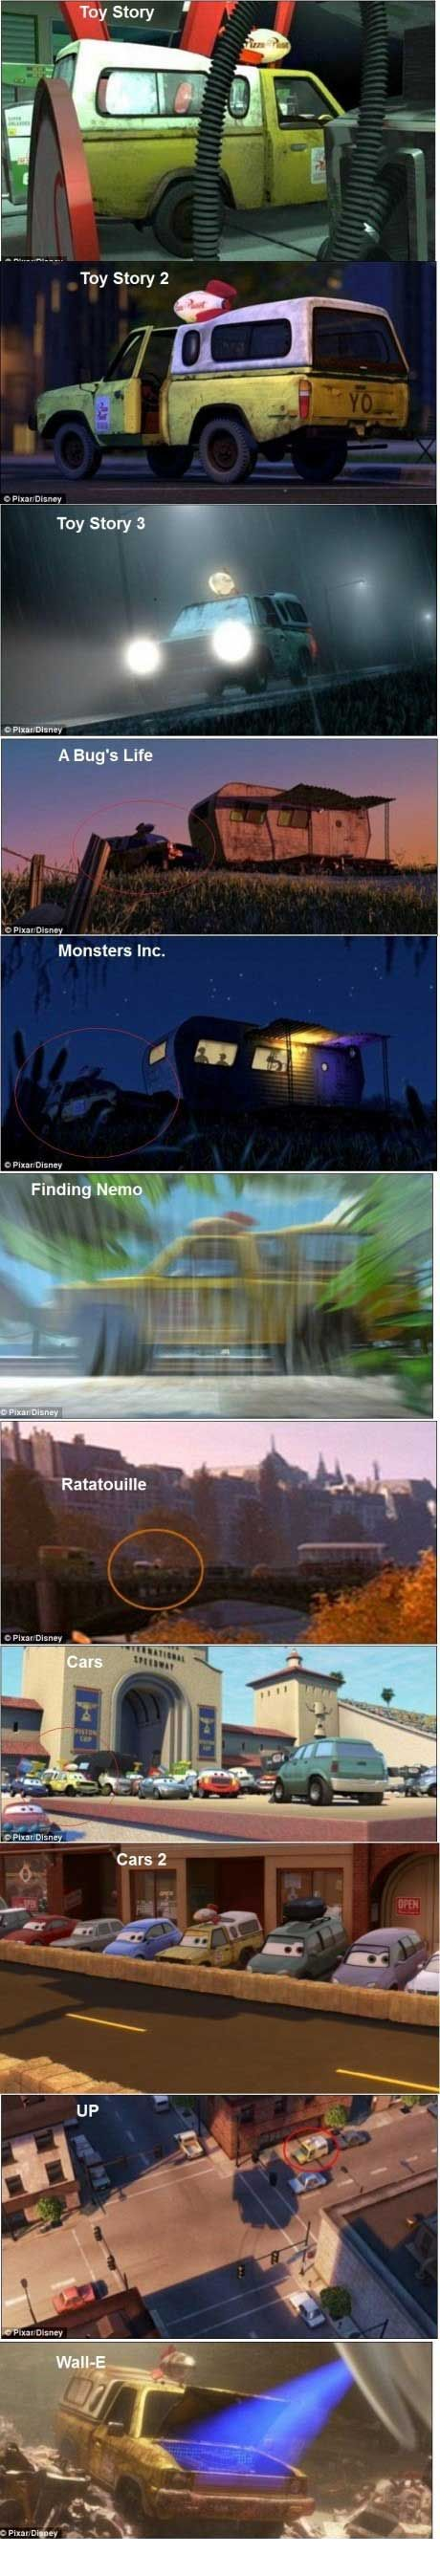 Well played Pixar, well played...